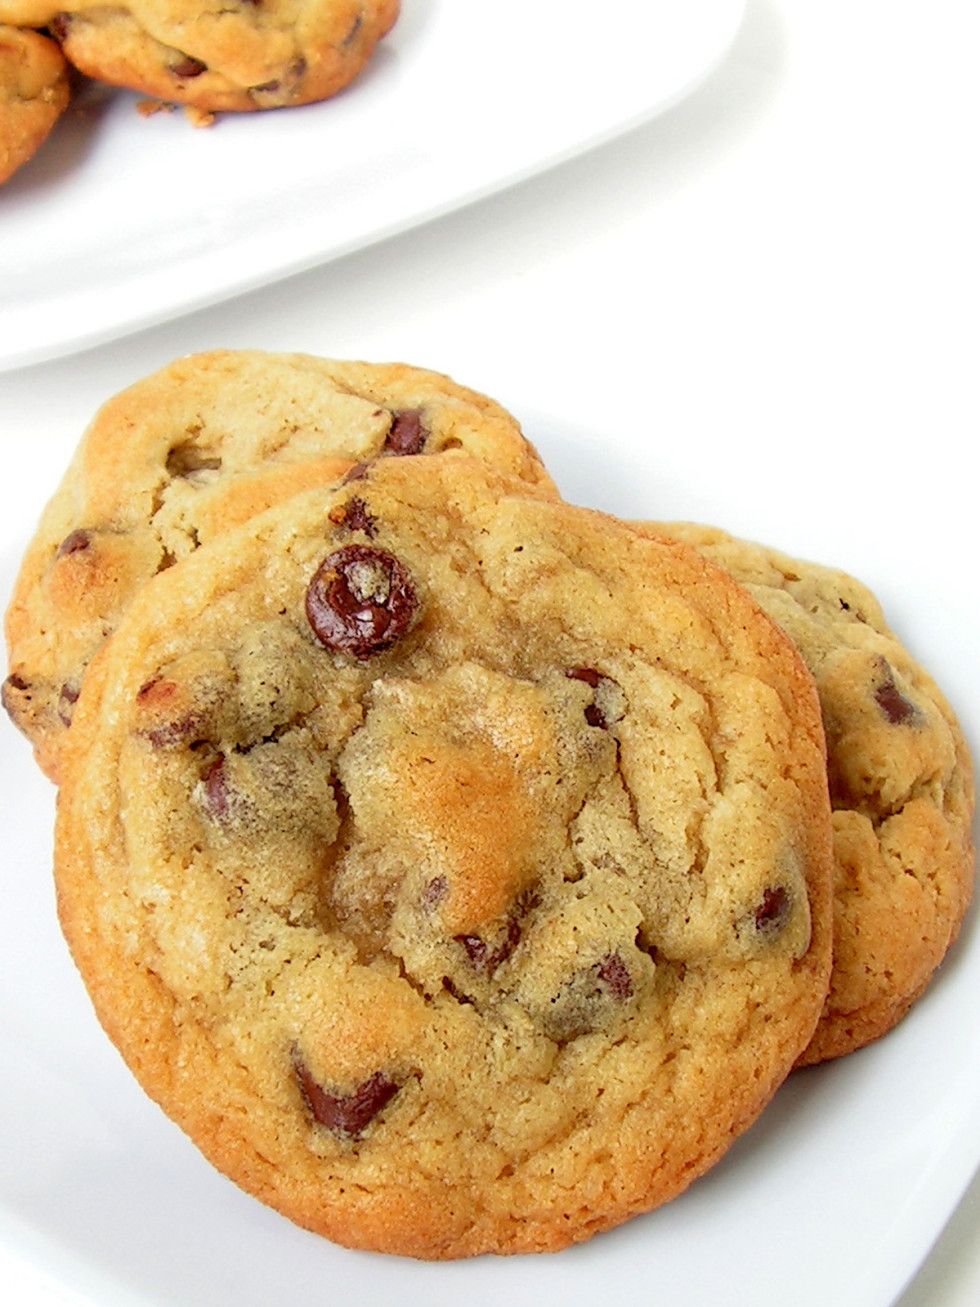 Chocolate chip cookies at Tiny Boxwoods